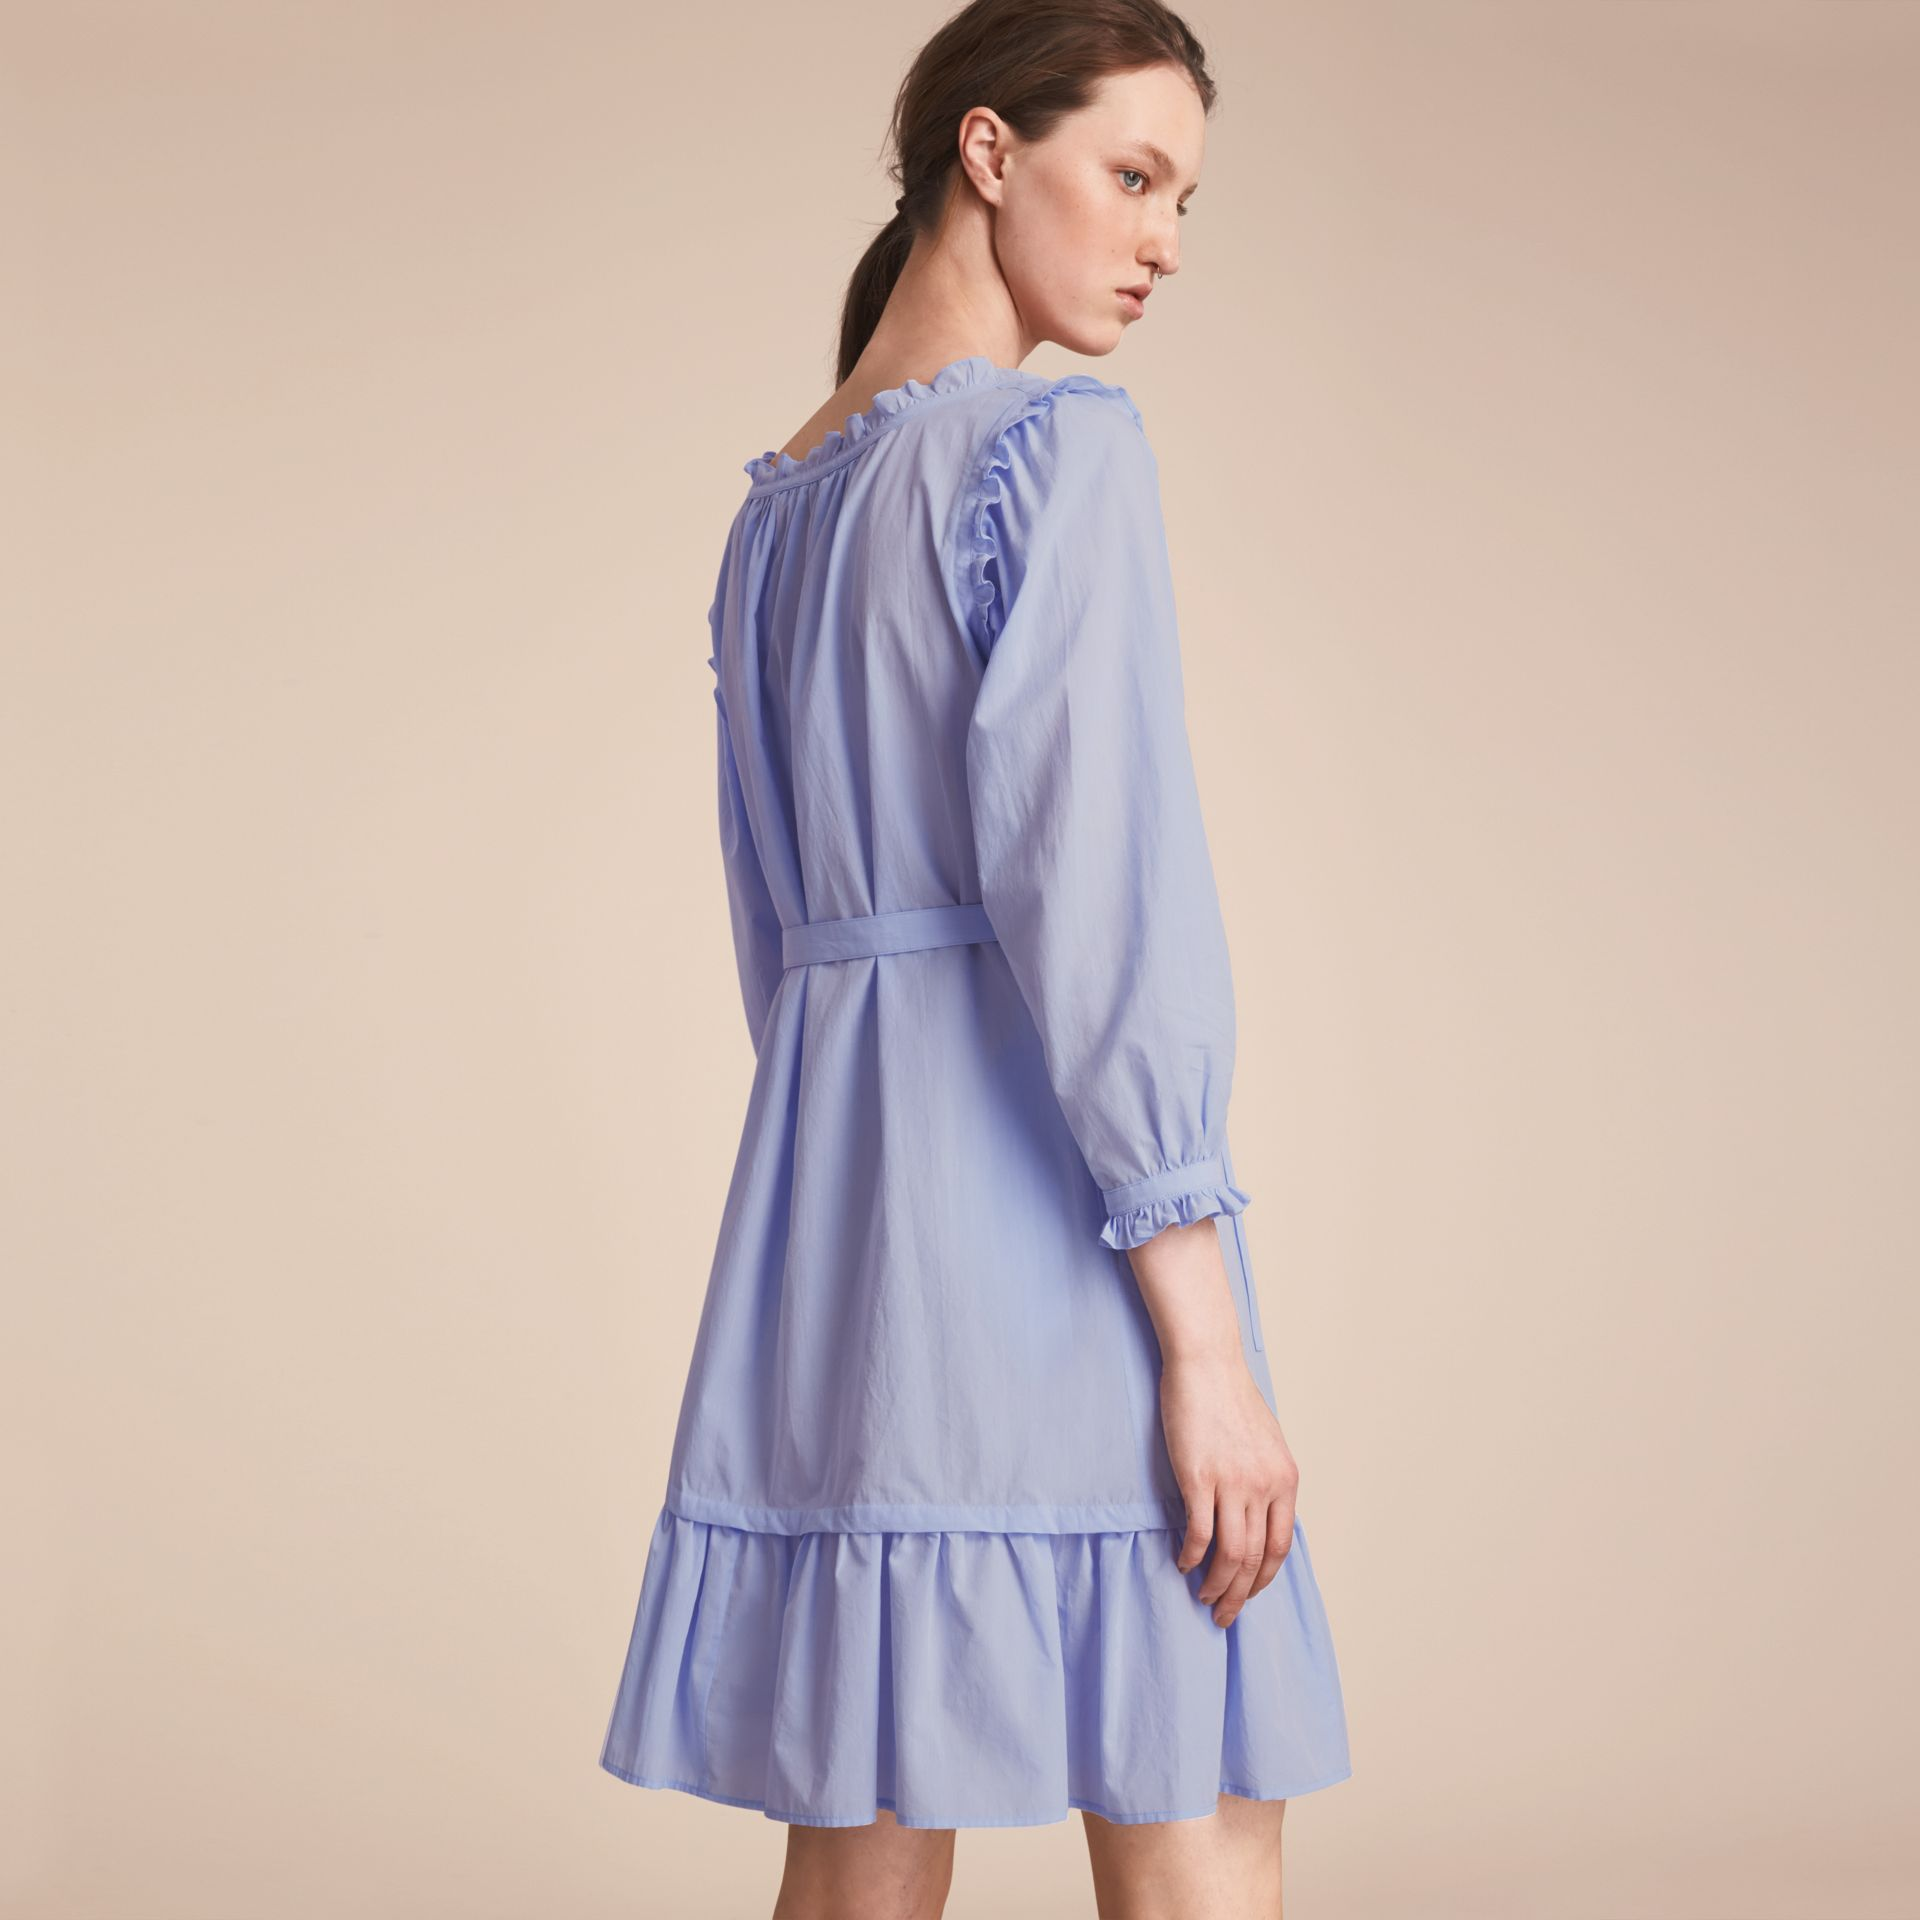 Ruffle and Pintuck Detail Cotton Dress in Pale Blue - Women | Burberry - gallery image 2